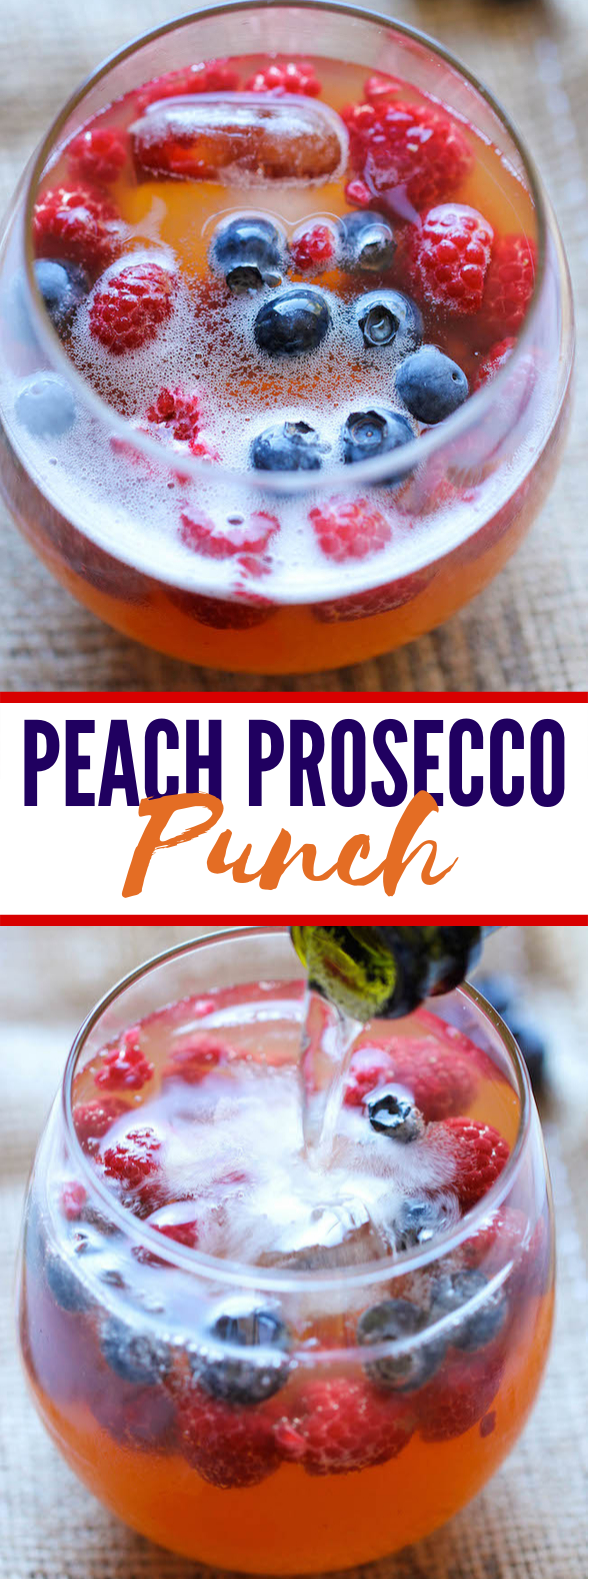 PEACH PROSECCO PUNCH #drinks #freshdrink #cocktails #punch #peach